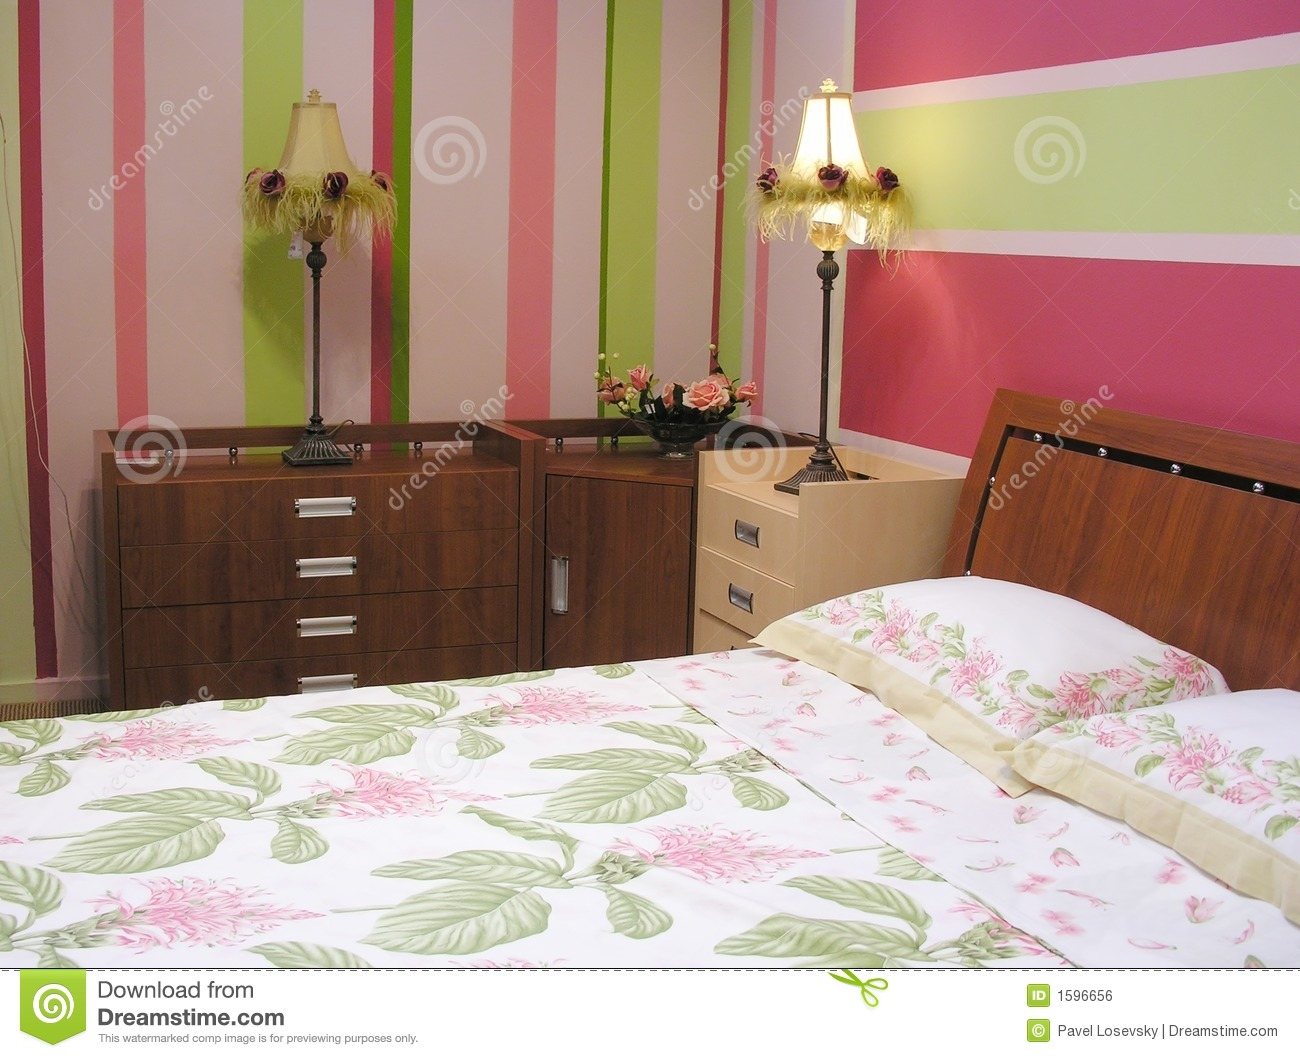 Pink green bedroom. Pink Green Bedroom Royalty Free Stock Image   Image  1596656